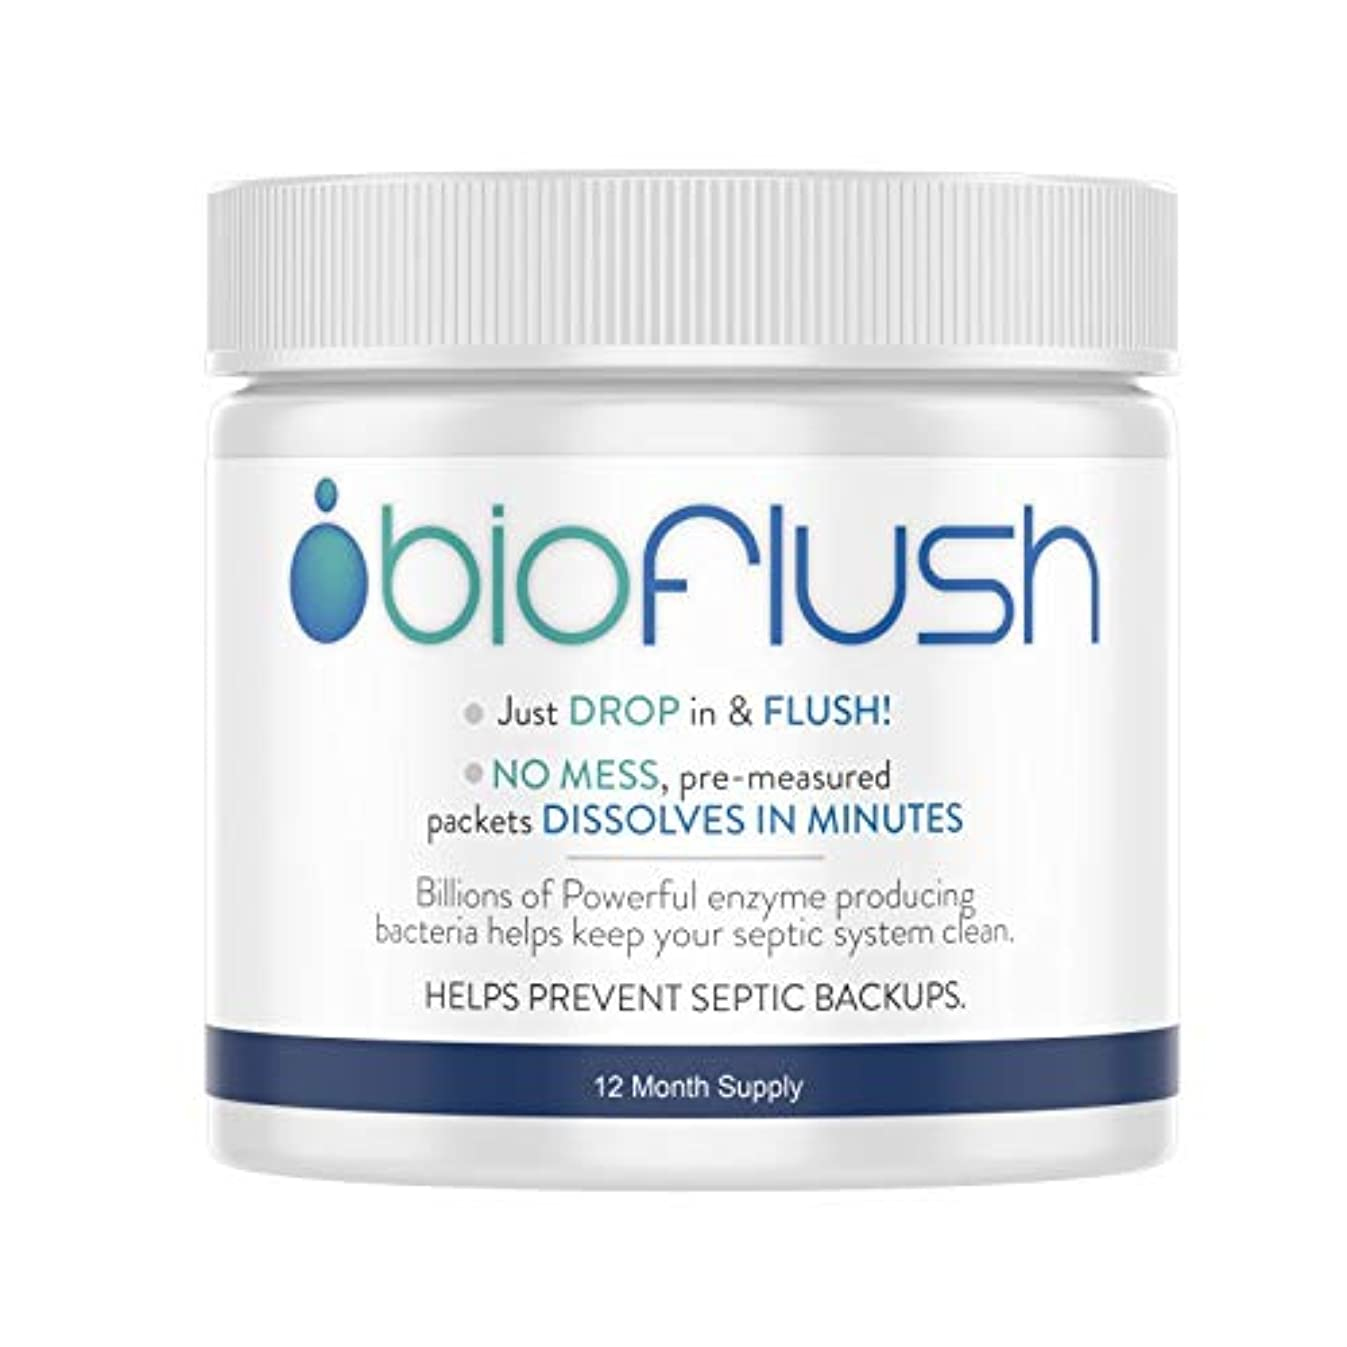 Bioflush Natural Septic Tank Treatment (1-Year Supply - 12 packets) - Safe for Toilets, Sinks, Showers and Garbage Disposal Drains - Pre-Measured for Easy Use - Made in the USA, Dissolves in Minutes